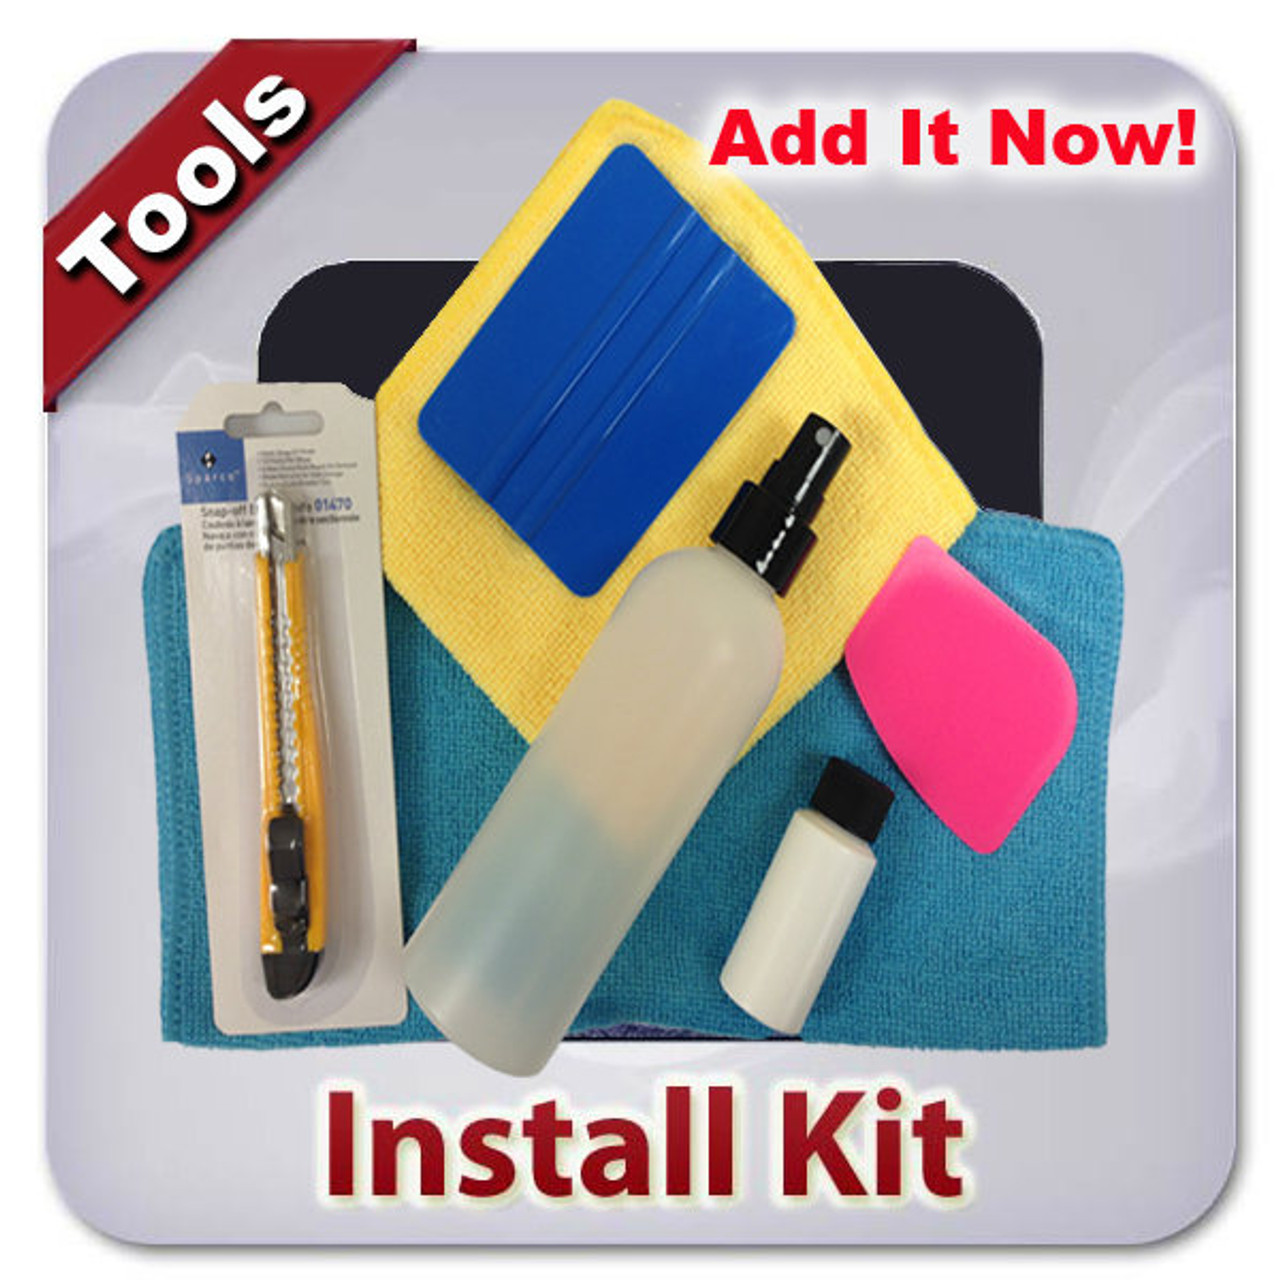 Installation tools to finish your clear bra project.